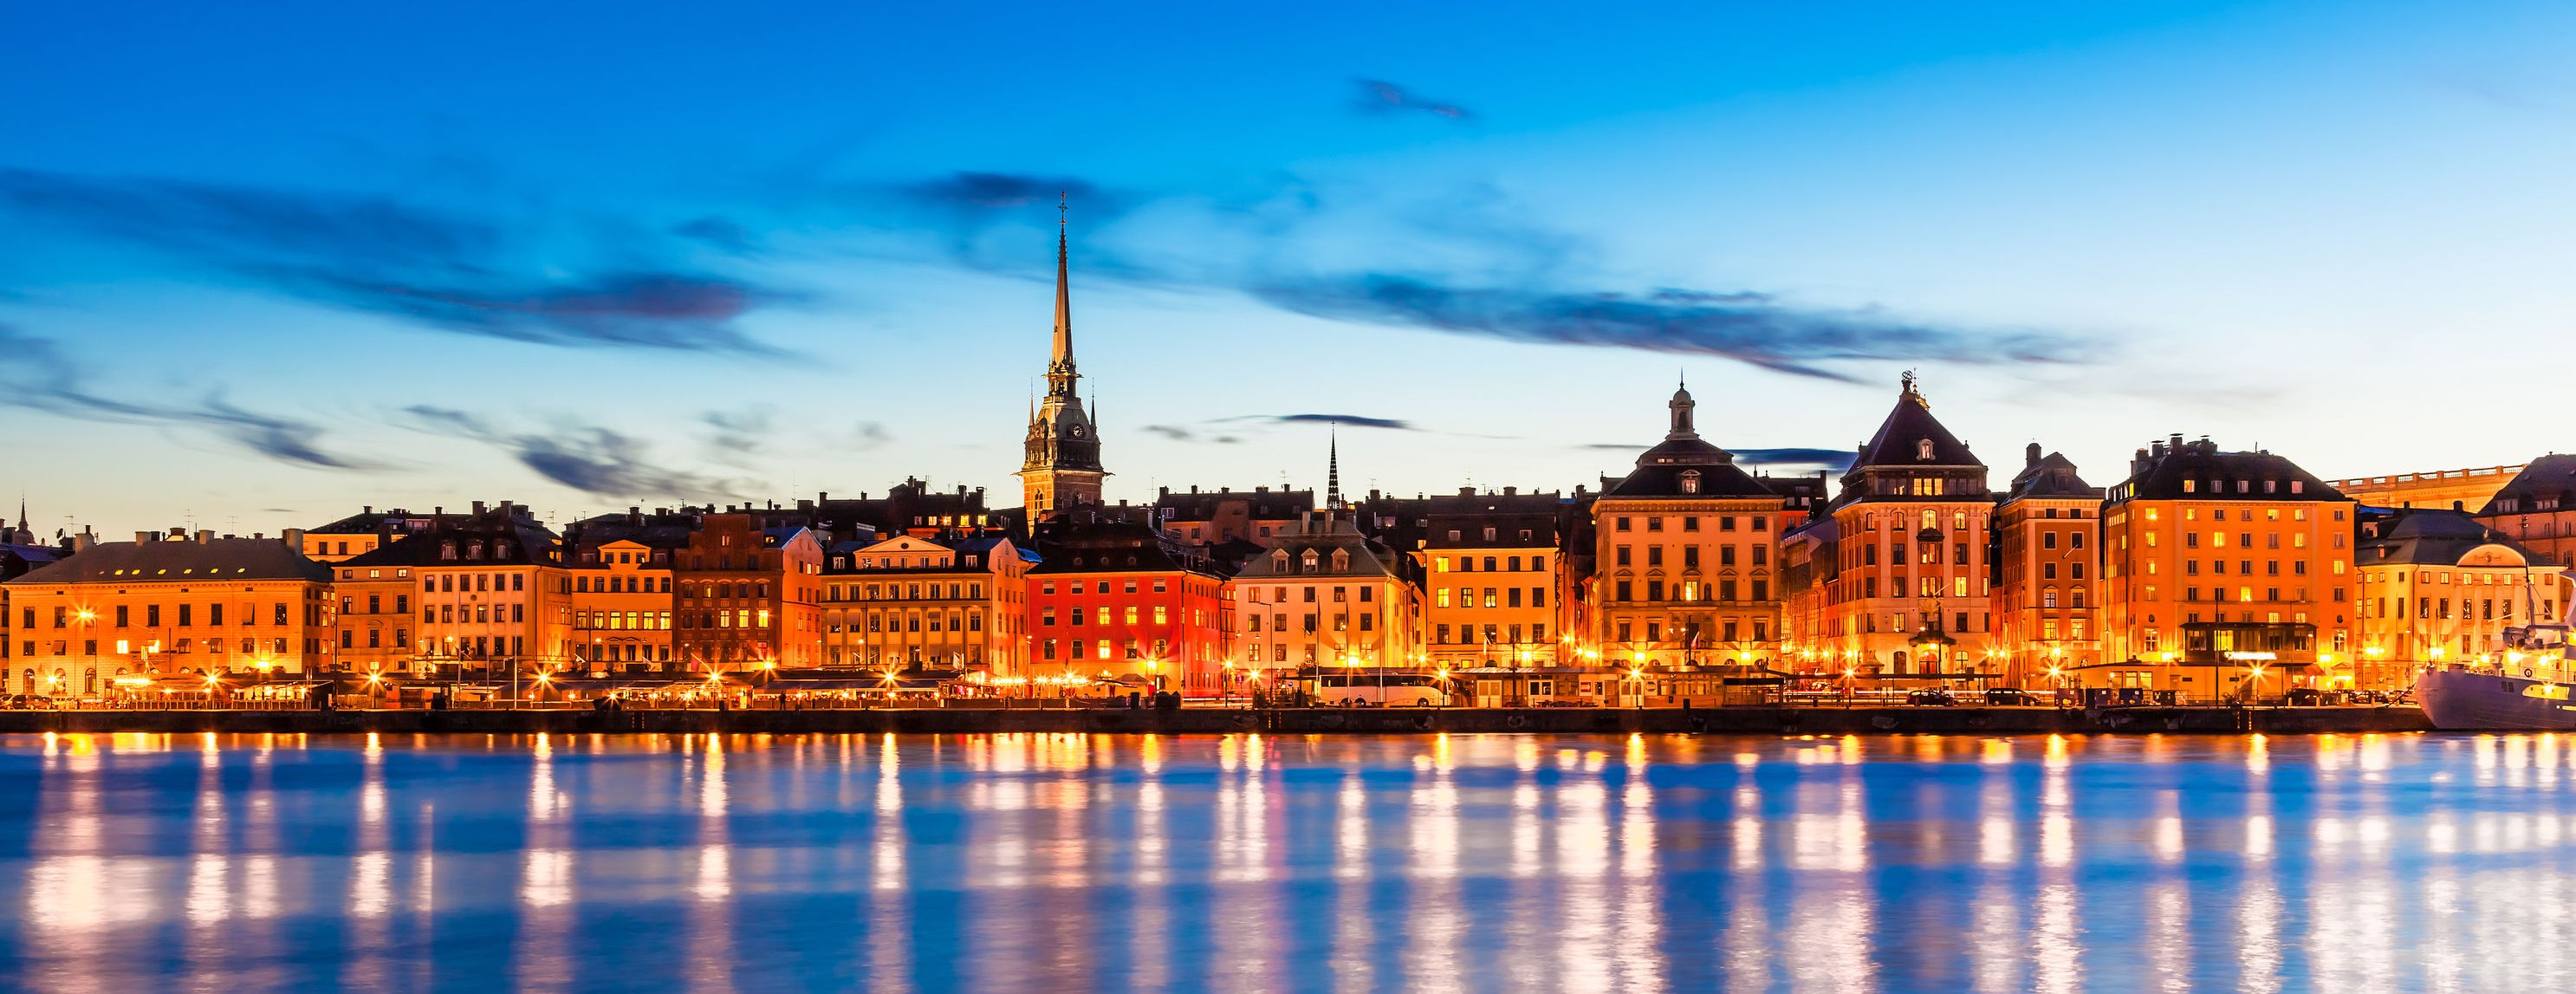 stockholm-waterfront-view